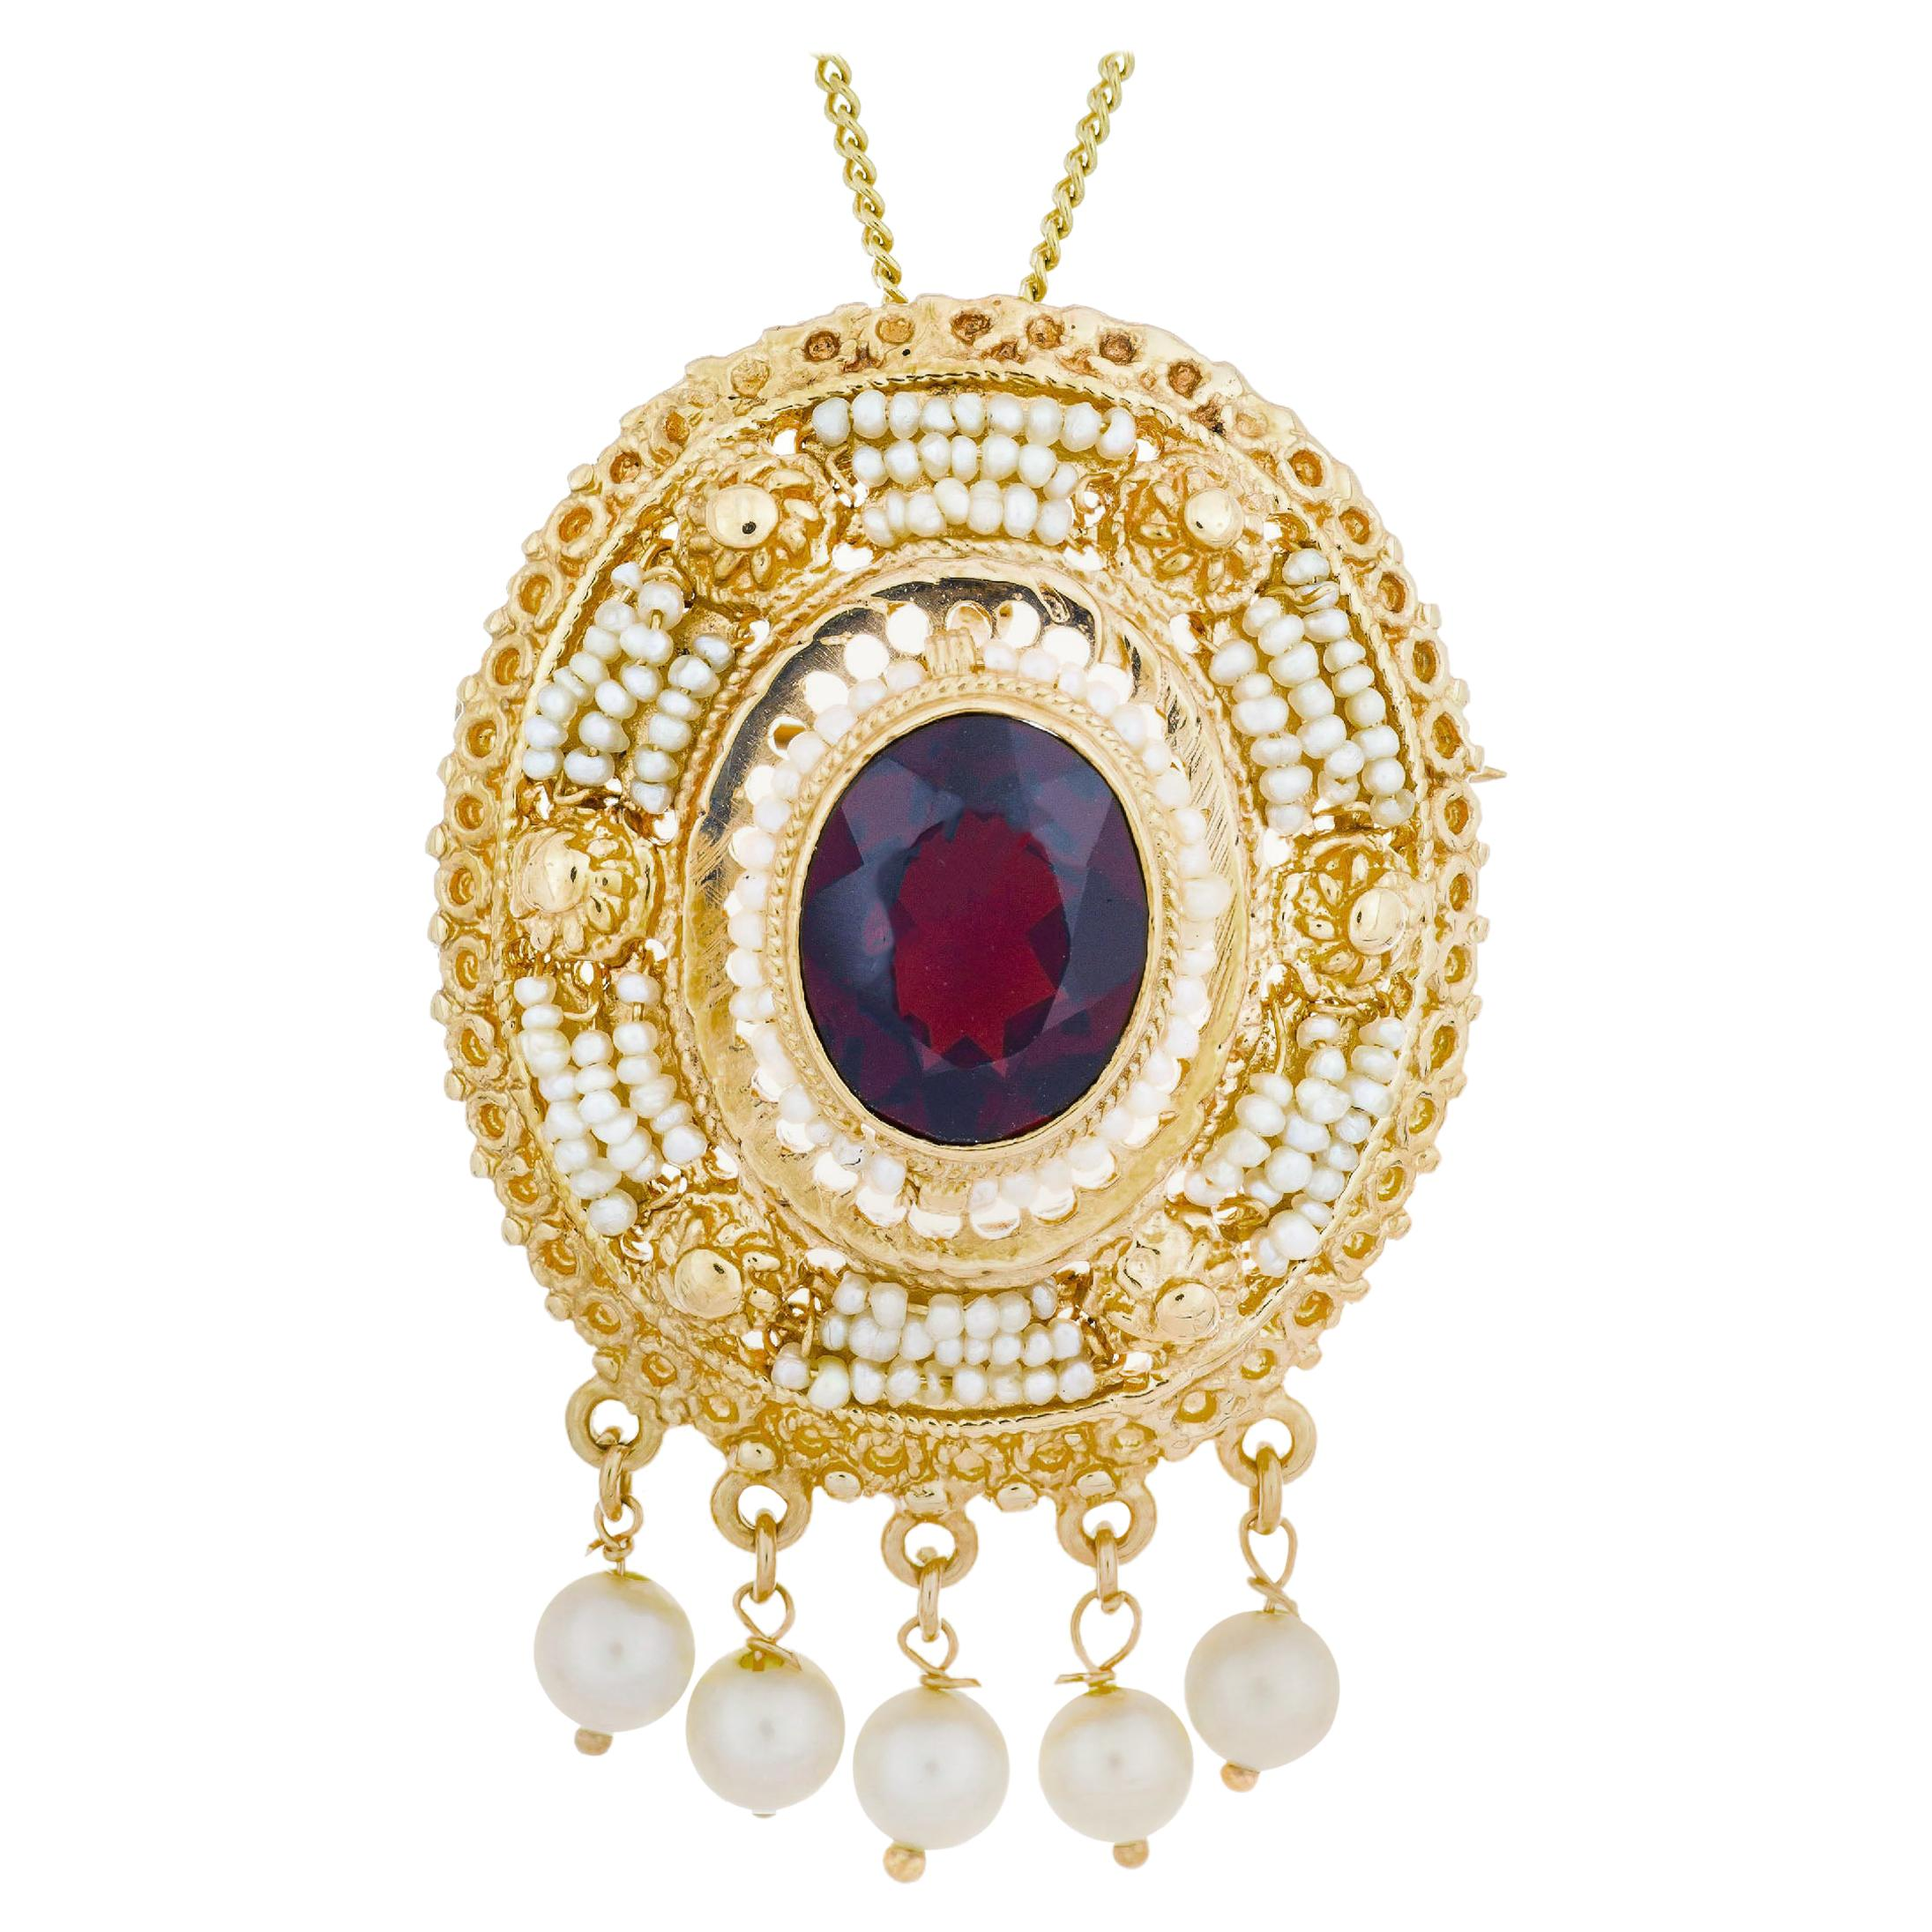 Garnet Seed Pearl Yellow Gold Pendant Brooch Pendant Necklace